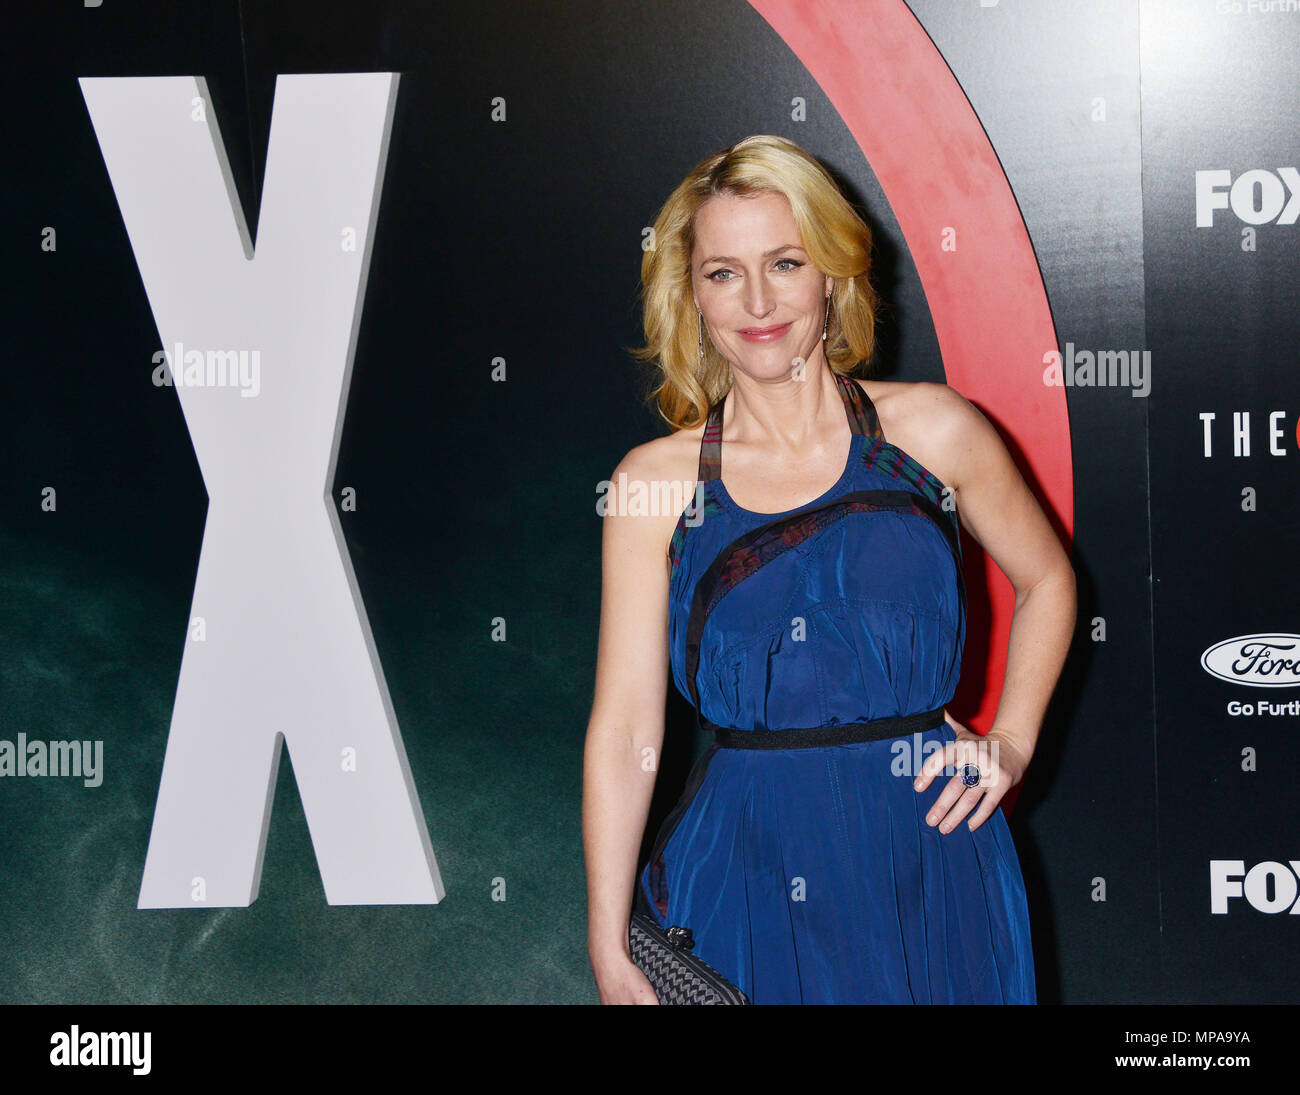 Gillian Anderson 031  at The X-Files Premiere at California Science Center in Los Angeles, CA  January 12, 2016.Gillian Anderson 031 ------------- Red Carpet Event, Vertical, USA, Film Industry, Celebrities,  Photography, Bestof, Arts Culture and Entertainment, Topix Celebrities fashion /  Vertical, Best of, Event in Hollywood Life - California,  Red Carpet and backstage, USA, Film Industry, Celebrities,  movie celebrities, TV celebrities, Music celebrities, Photography, Bestof, Arts Culture and Entertainment,  Topix, Three Quarters, vertical, one person,, from the year , 2016, inquiry tsuni@G - Stock Image